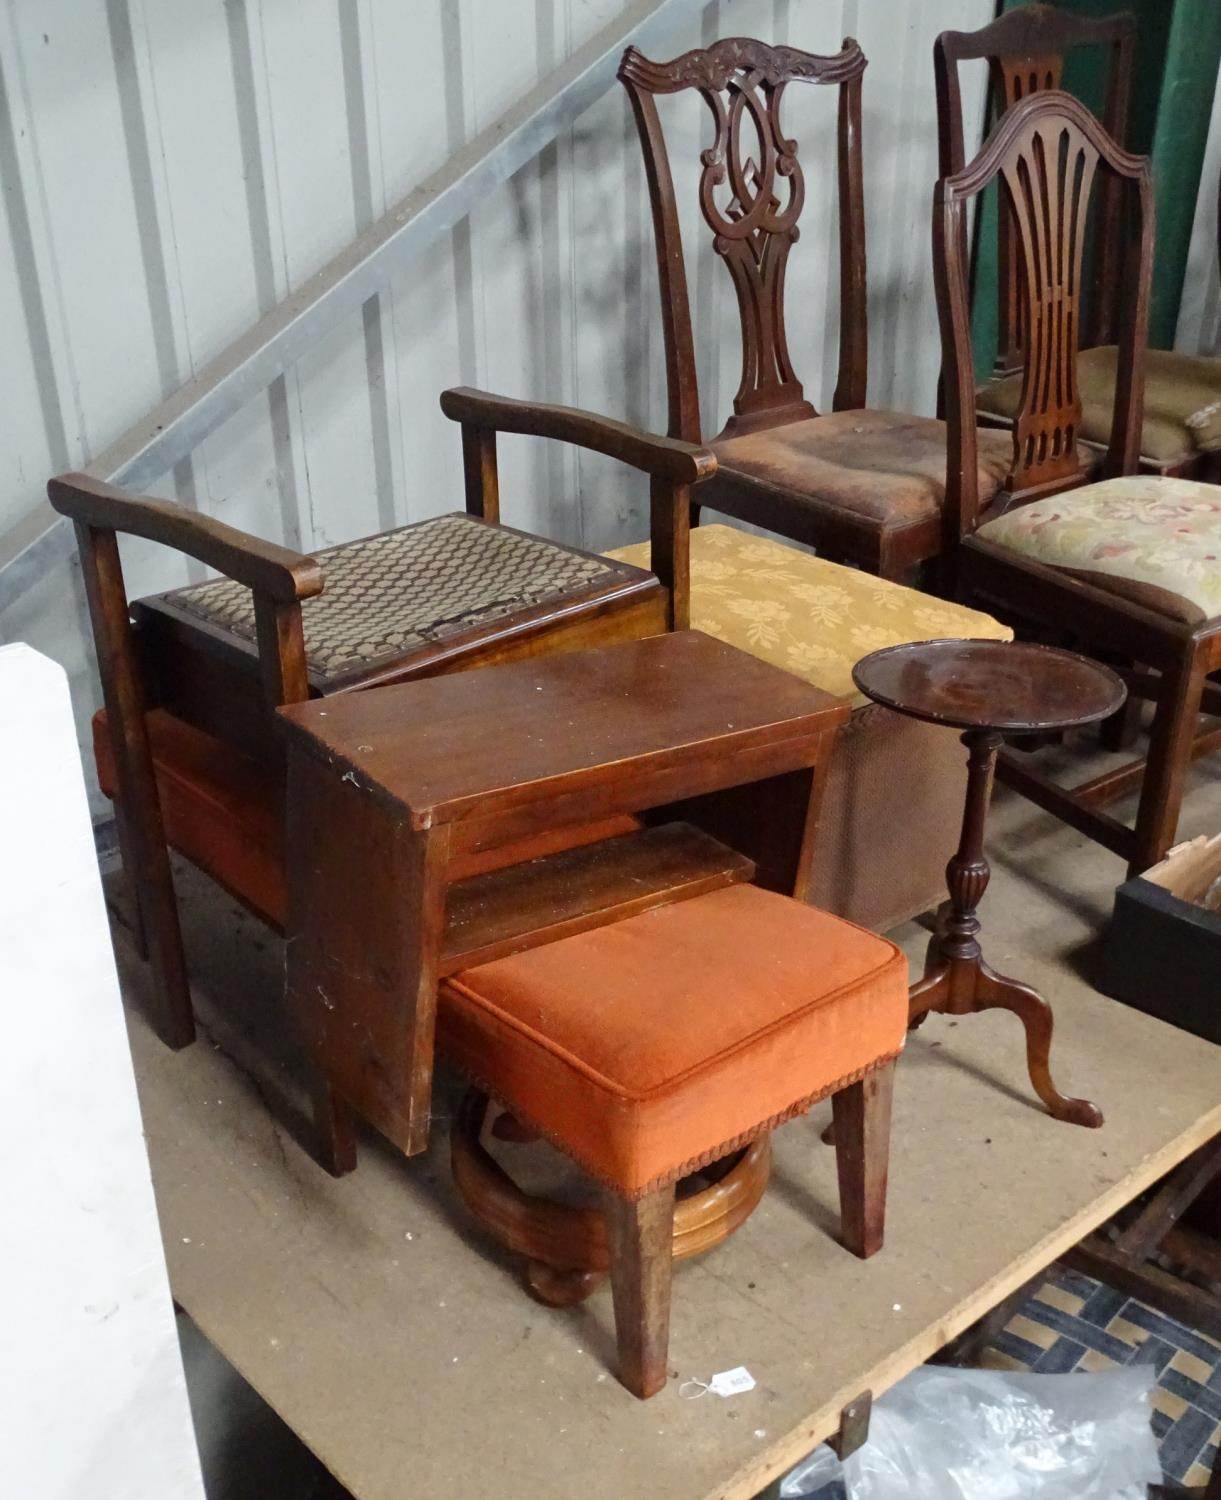 A quantity of furniture to include a piano stool, small step ladder, linen basket, etc. Please